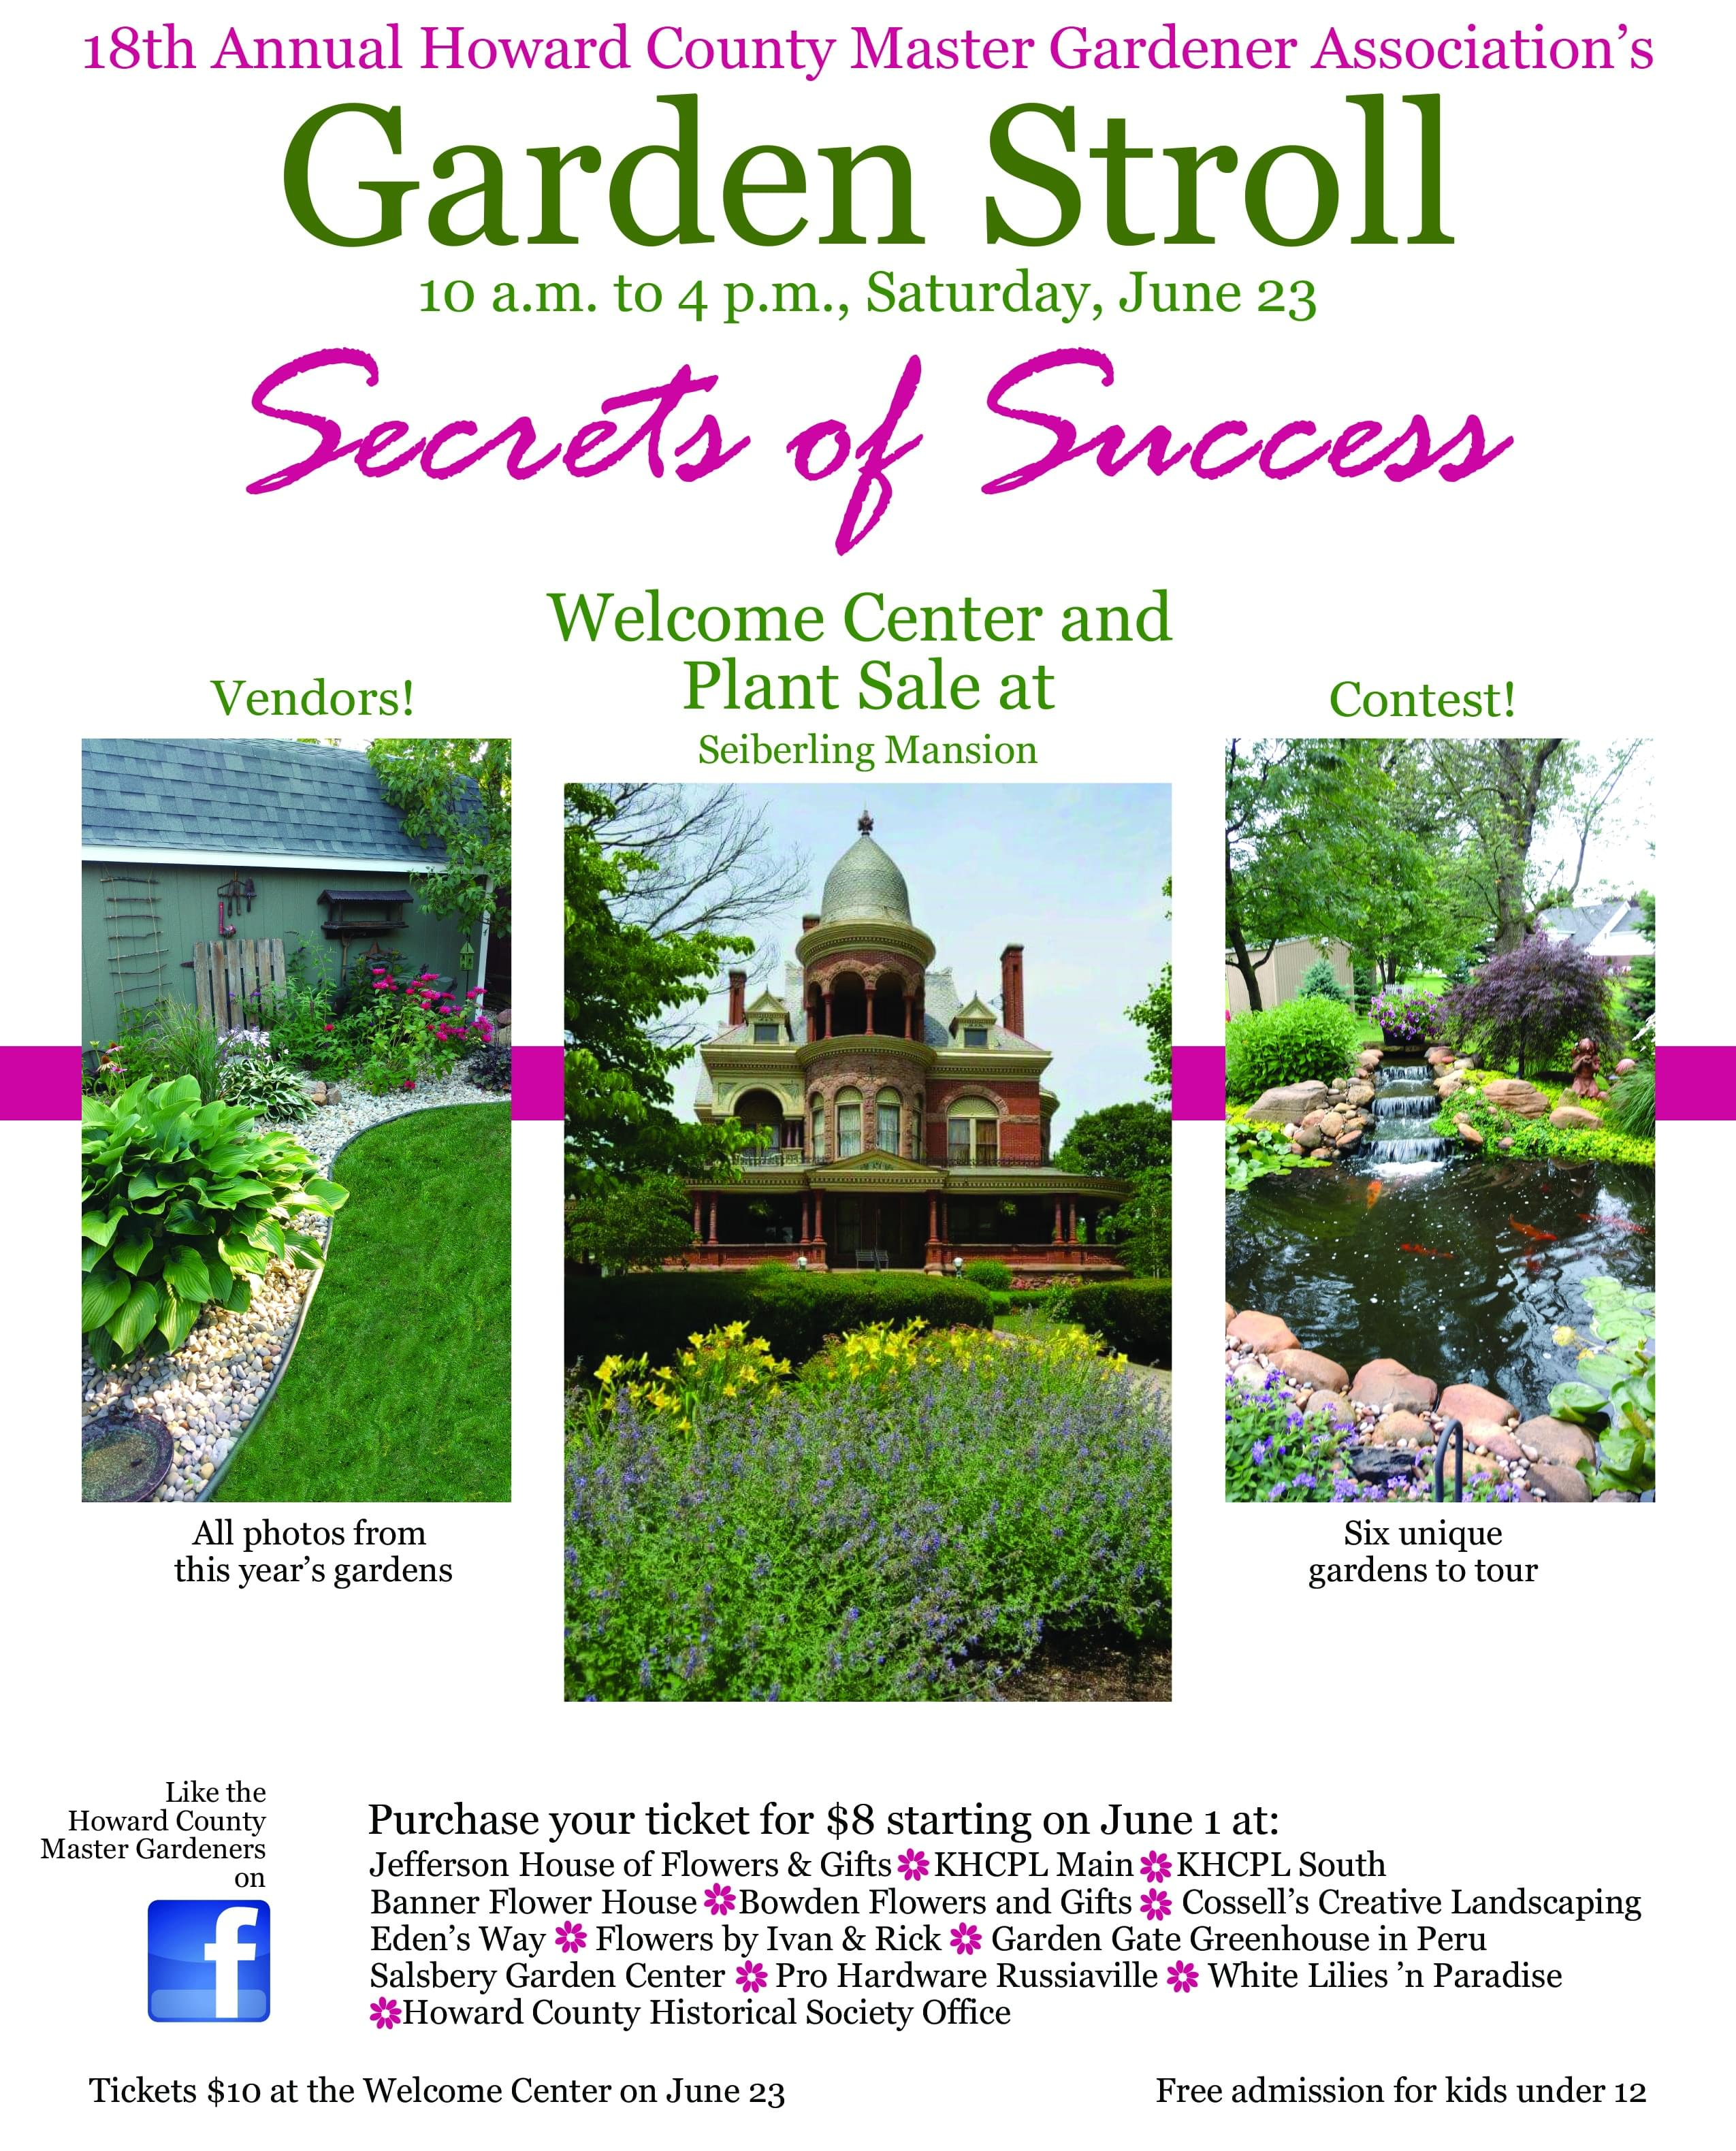 2018 Garden Stroll – Hosted by the Howard County Master Gardeners